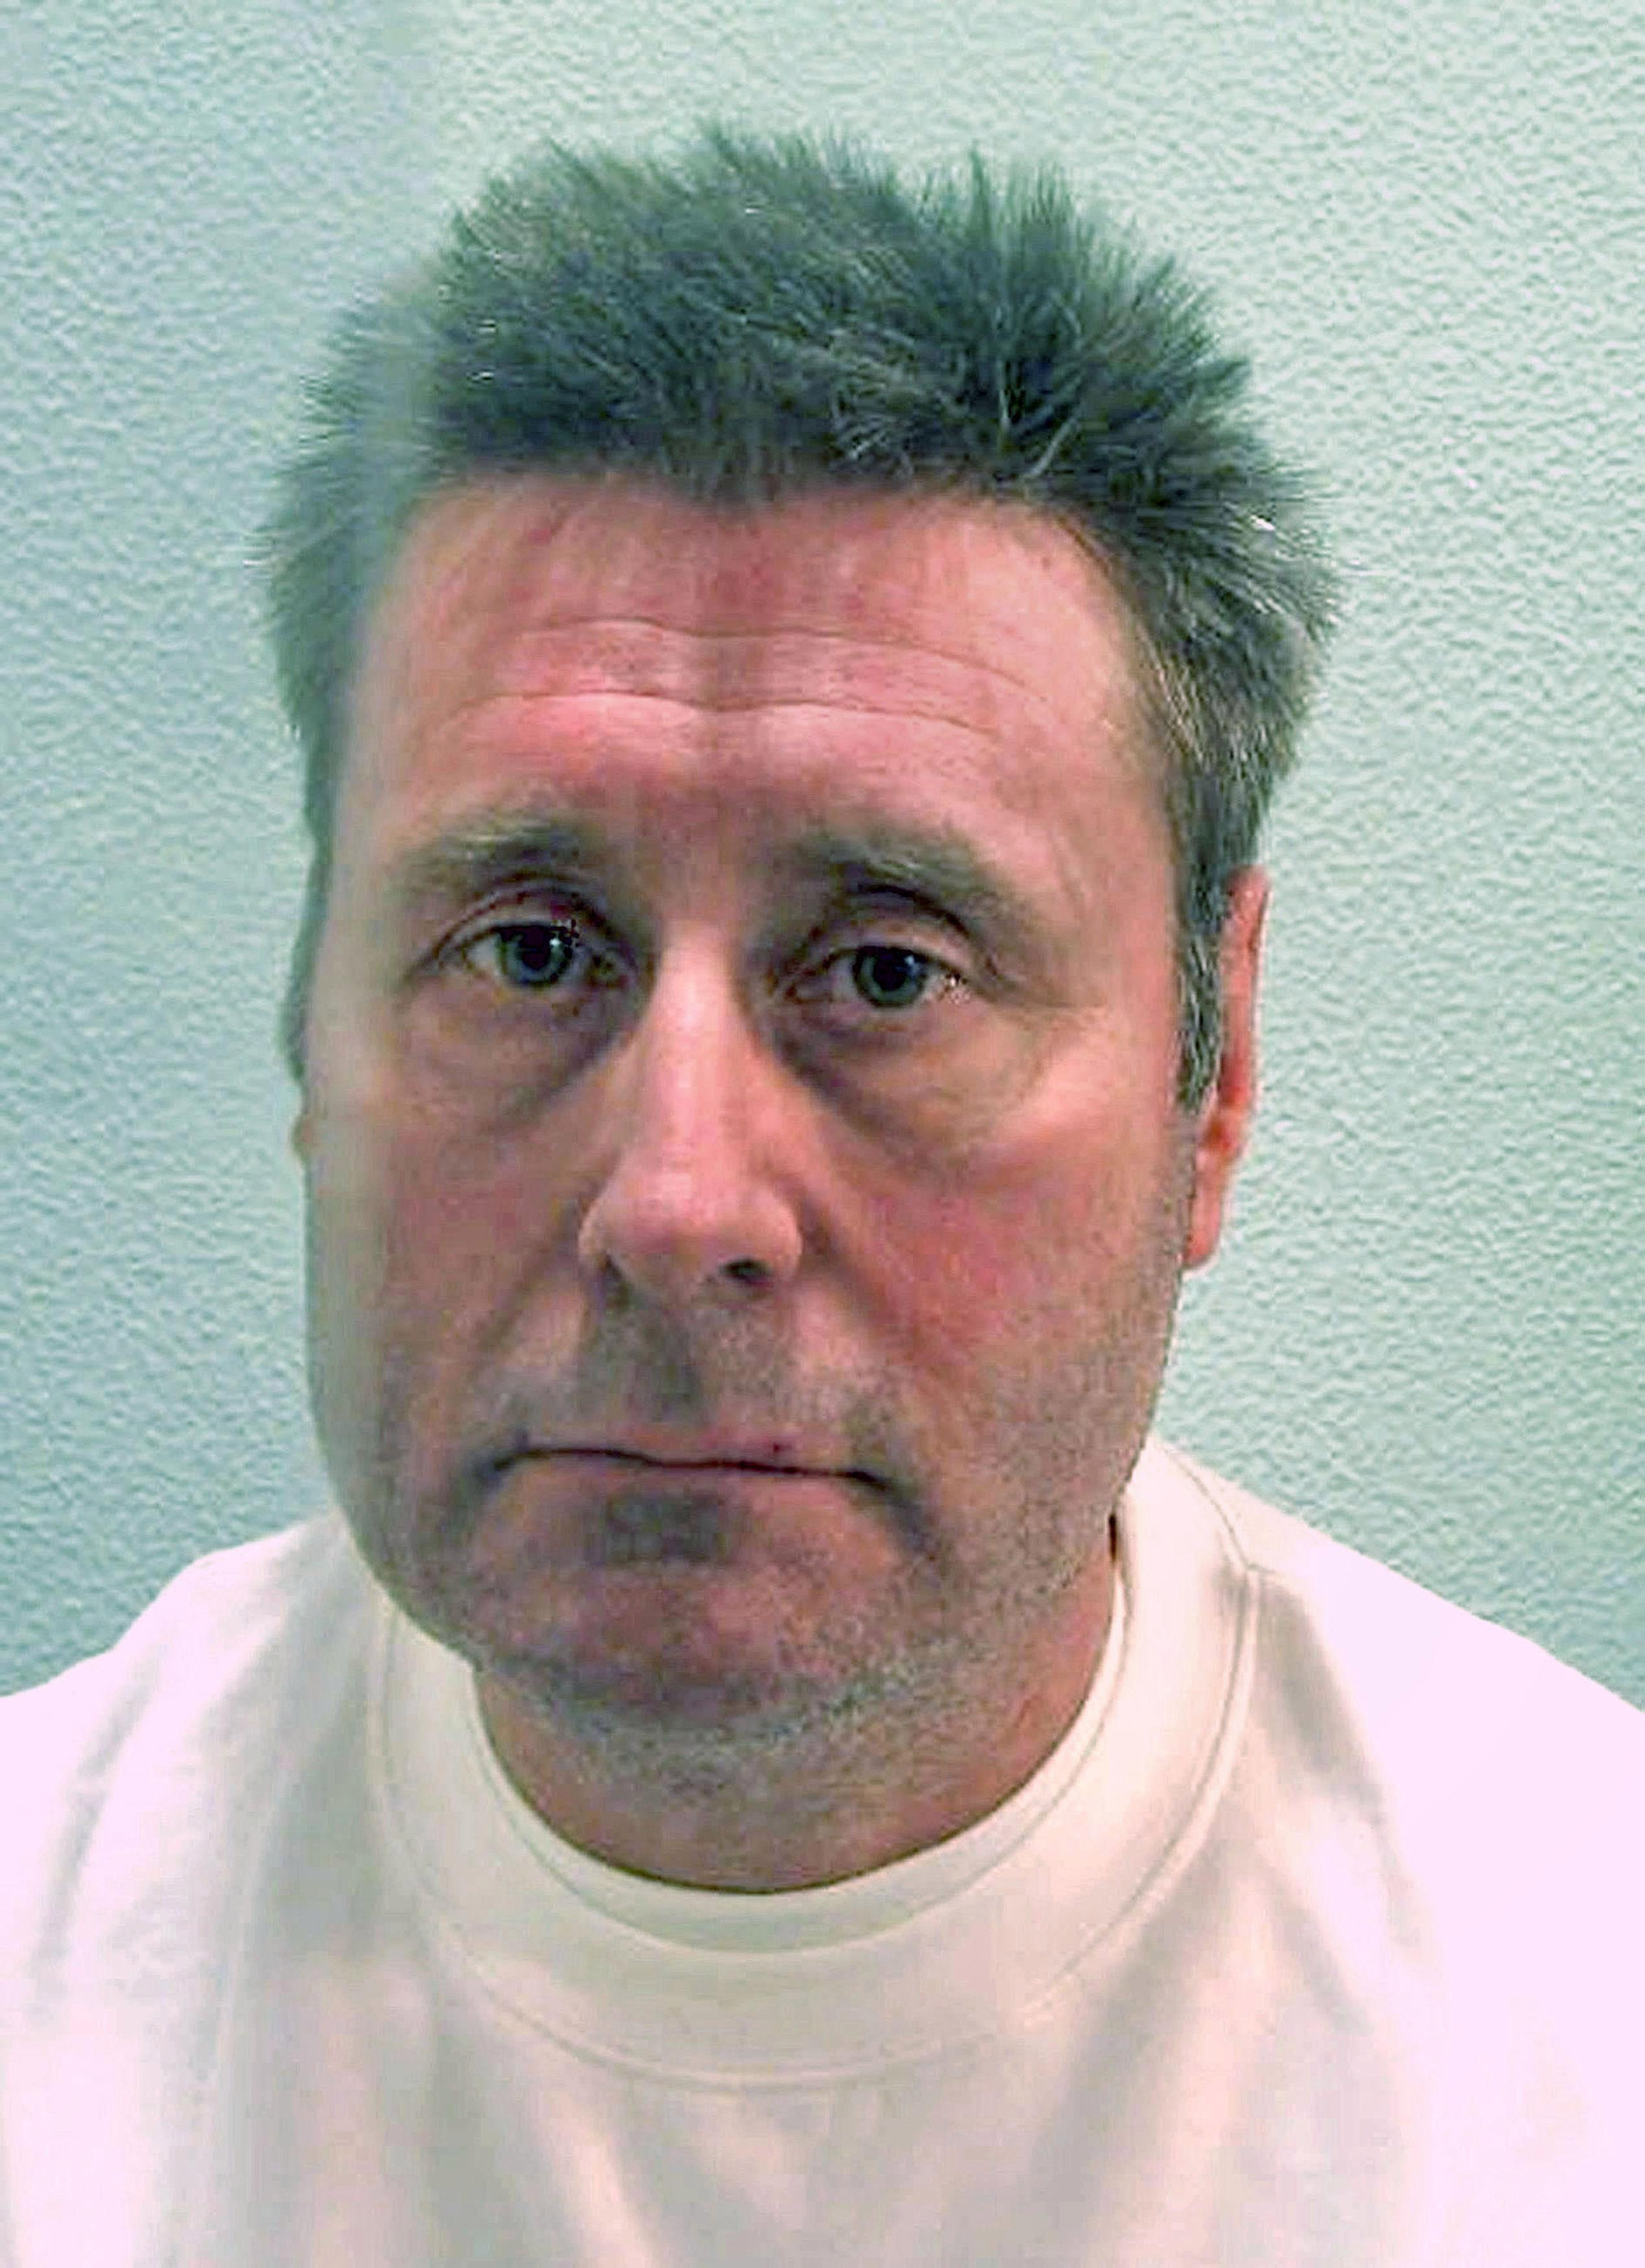 John Worboys early release in doubt as cops investigate new sex assault allegation